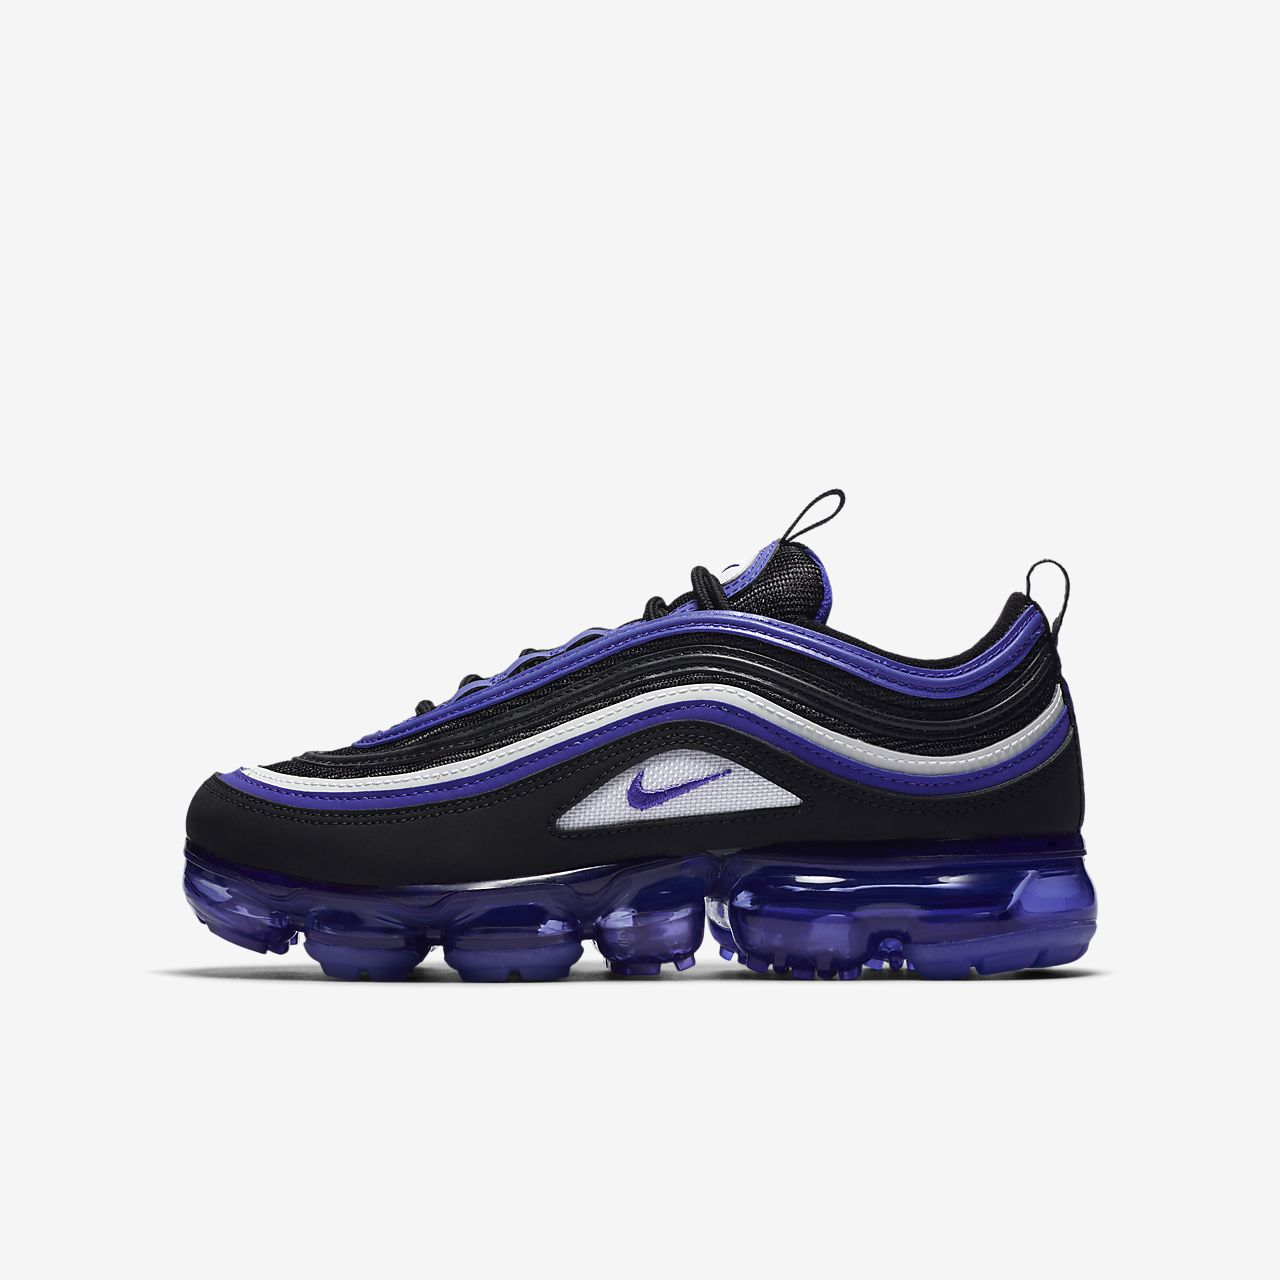 5b4c4e24032 Nike Air VaporMax 97 Big Kids  Shoe. Nike.com